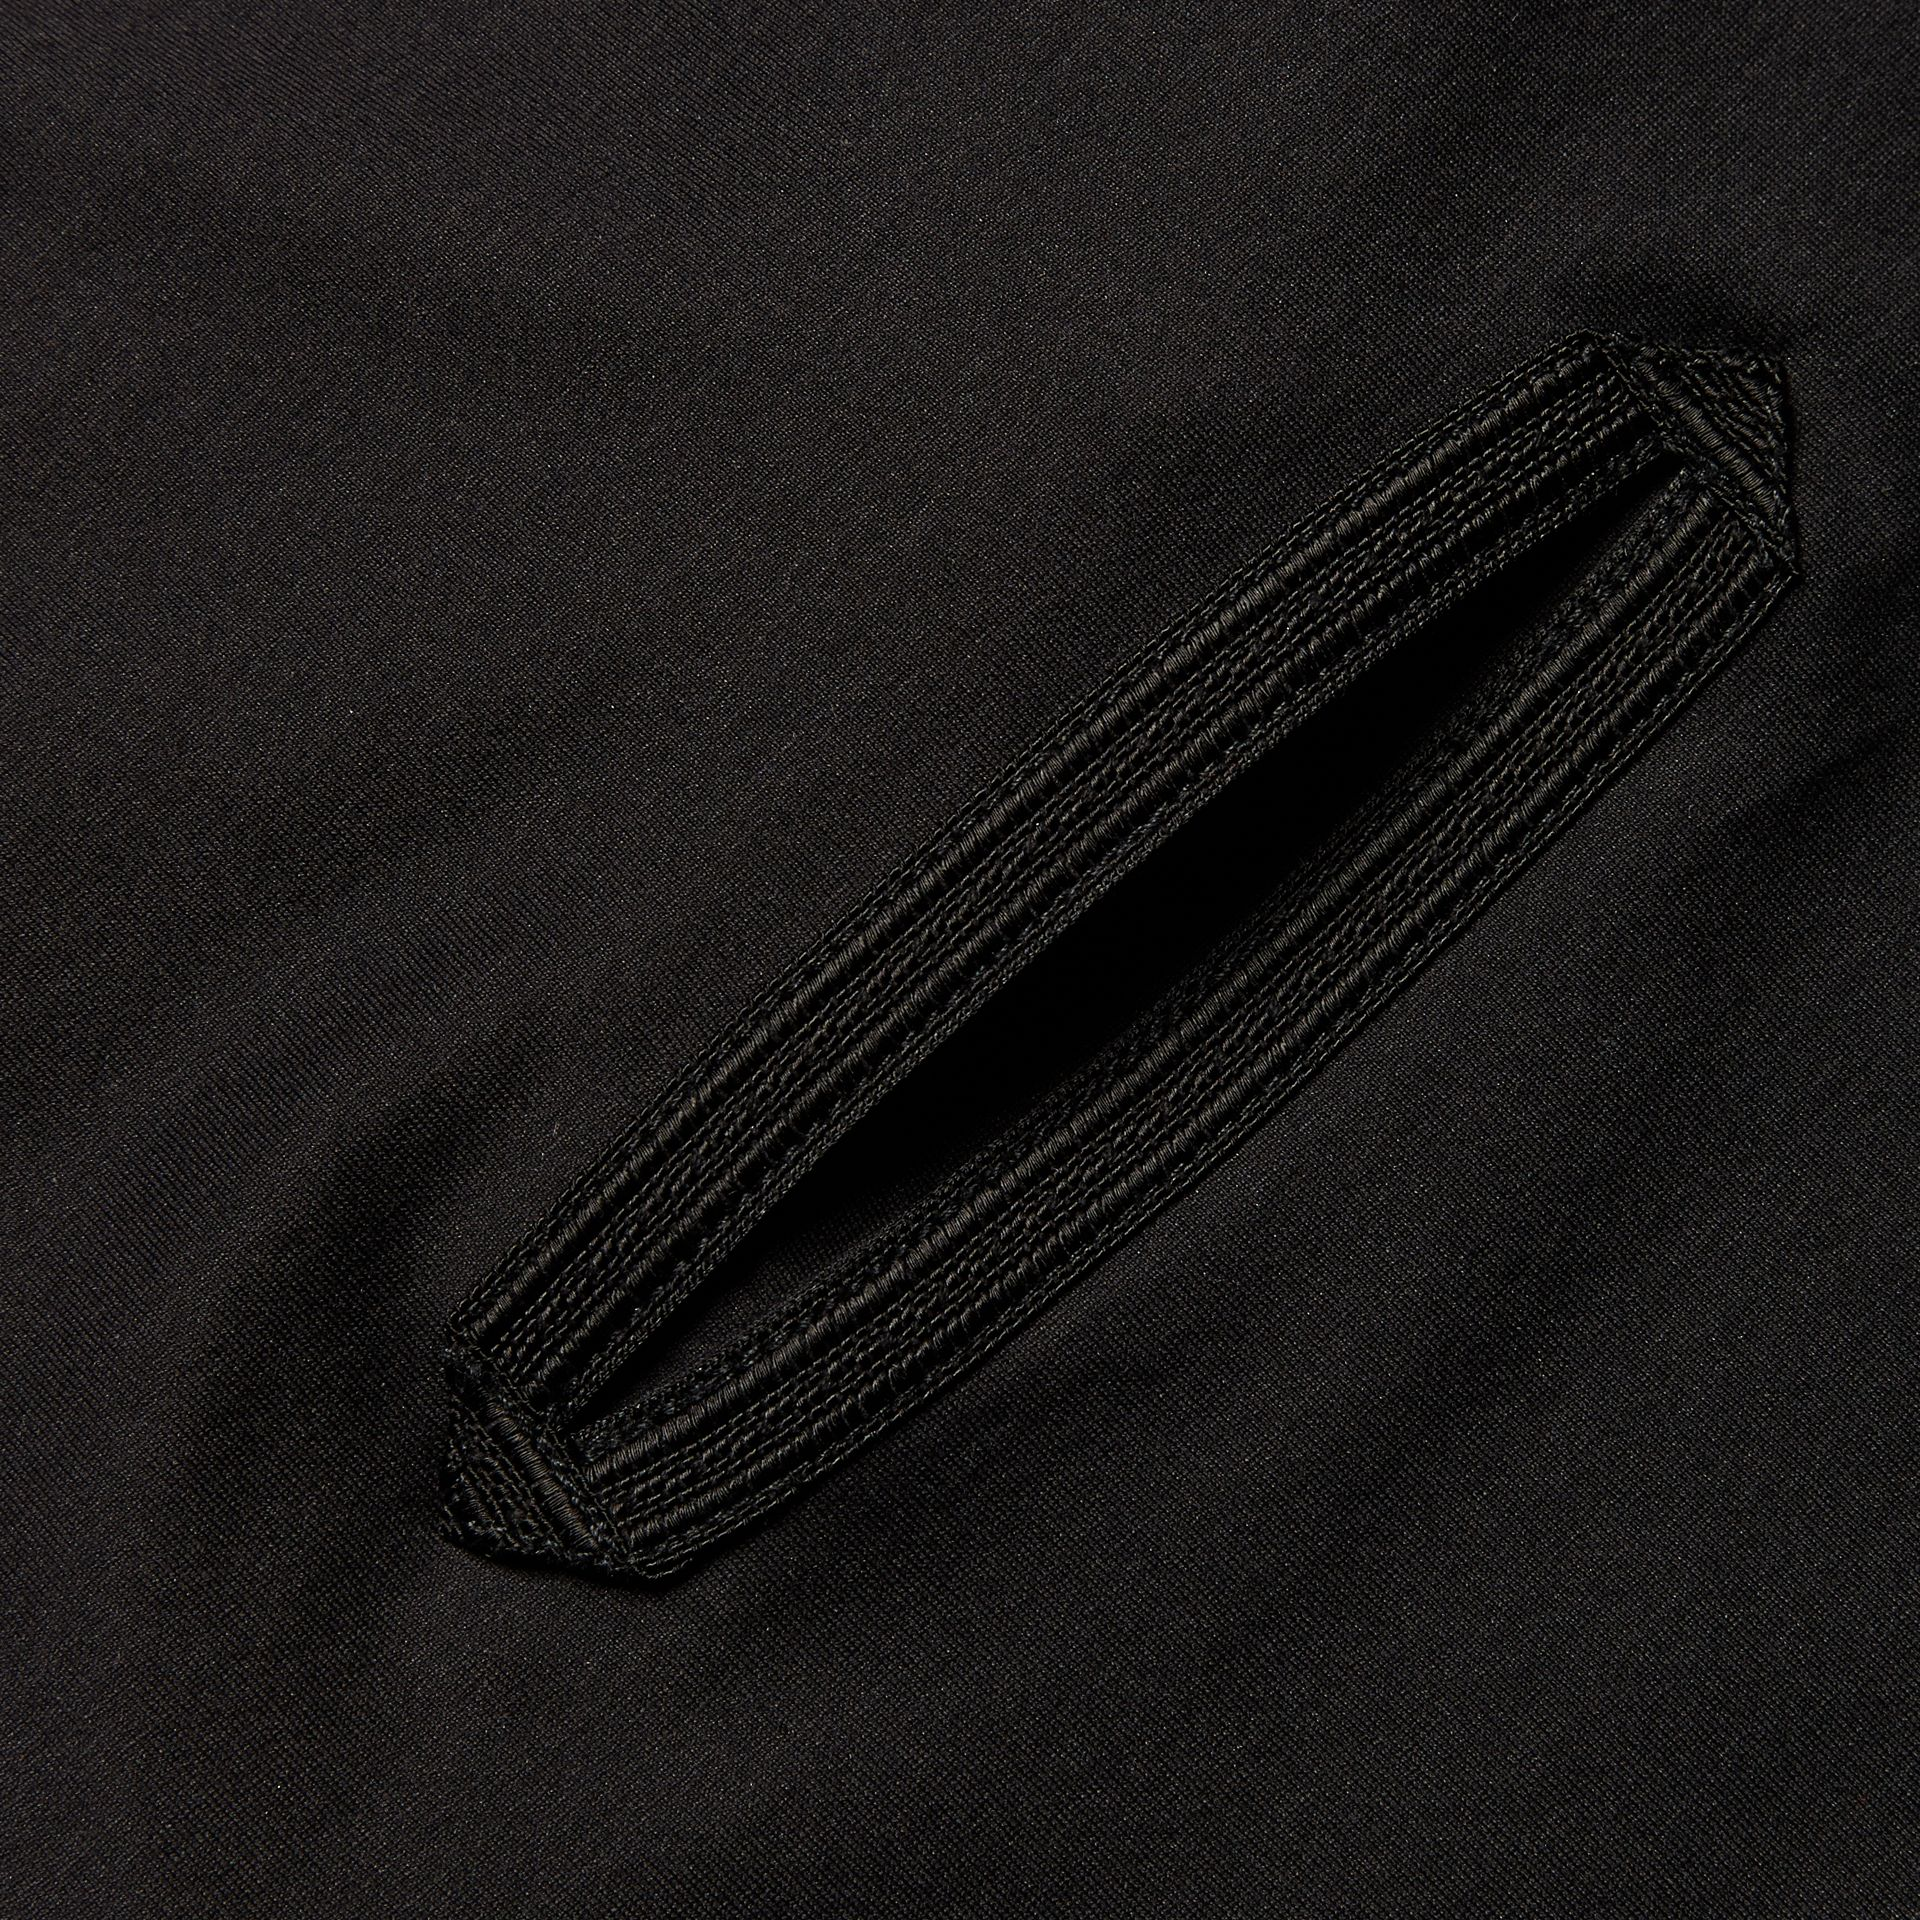 Black Regimental Tape Detail Cotton T-shirt Black - gallery image 2